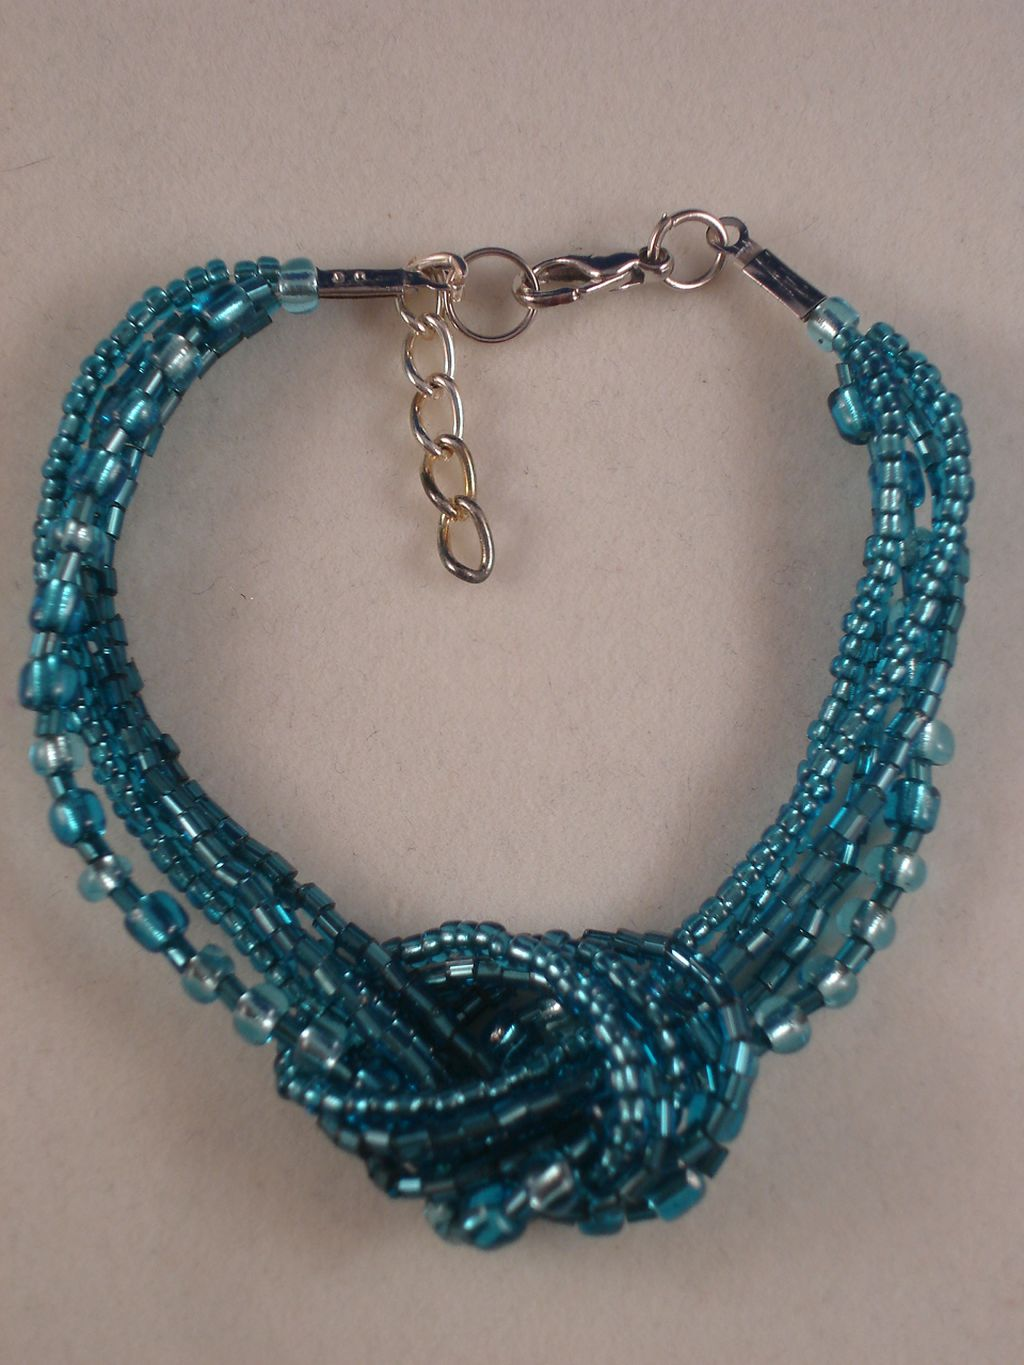 Turquoise Blue Beads Contemporary Knot Bracelet